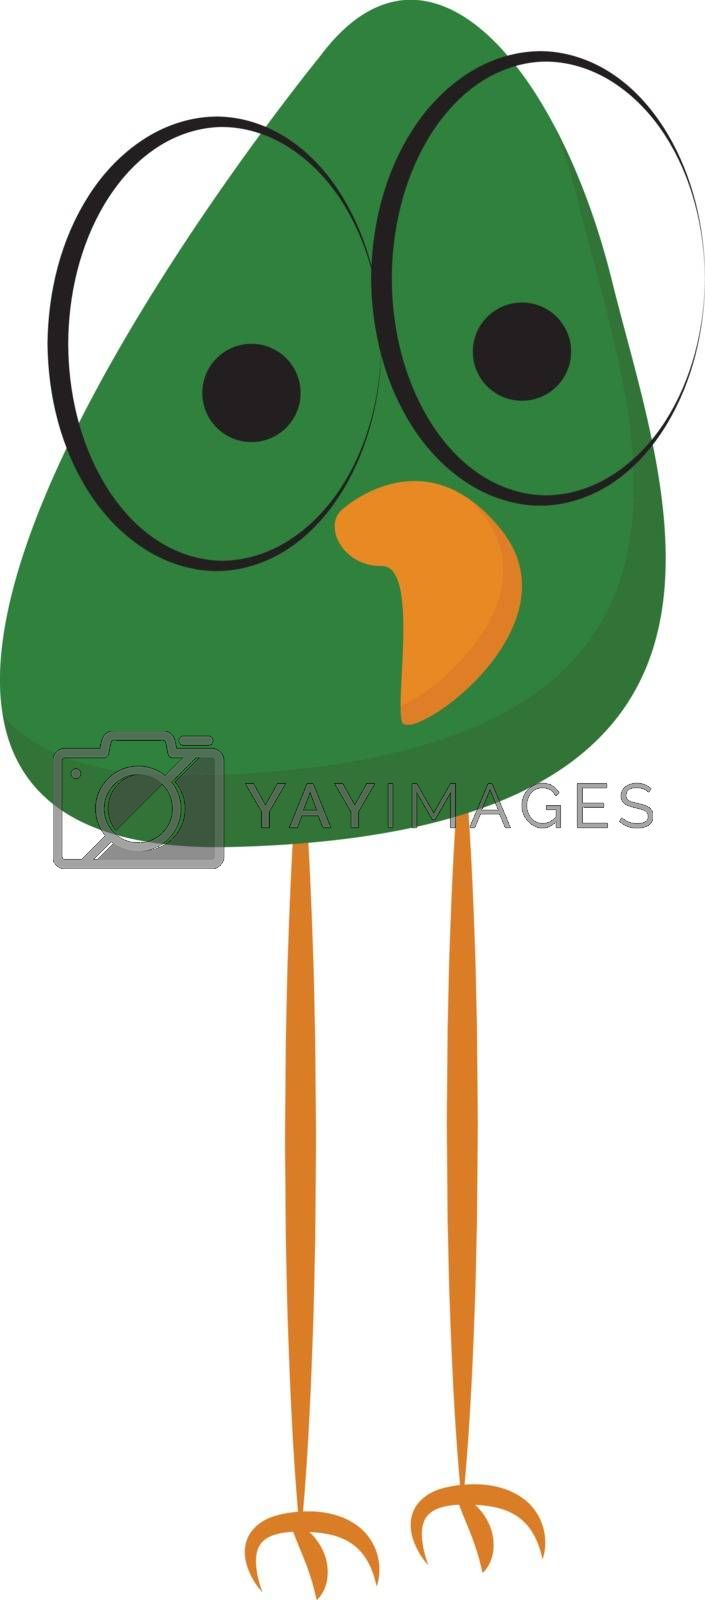 Royalty free image of Cartoon bird with spectacles that has no bridge temple and frame by Morphart